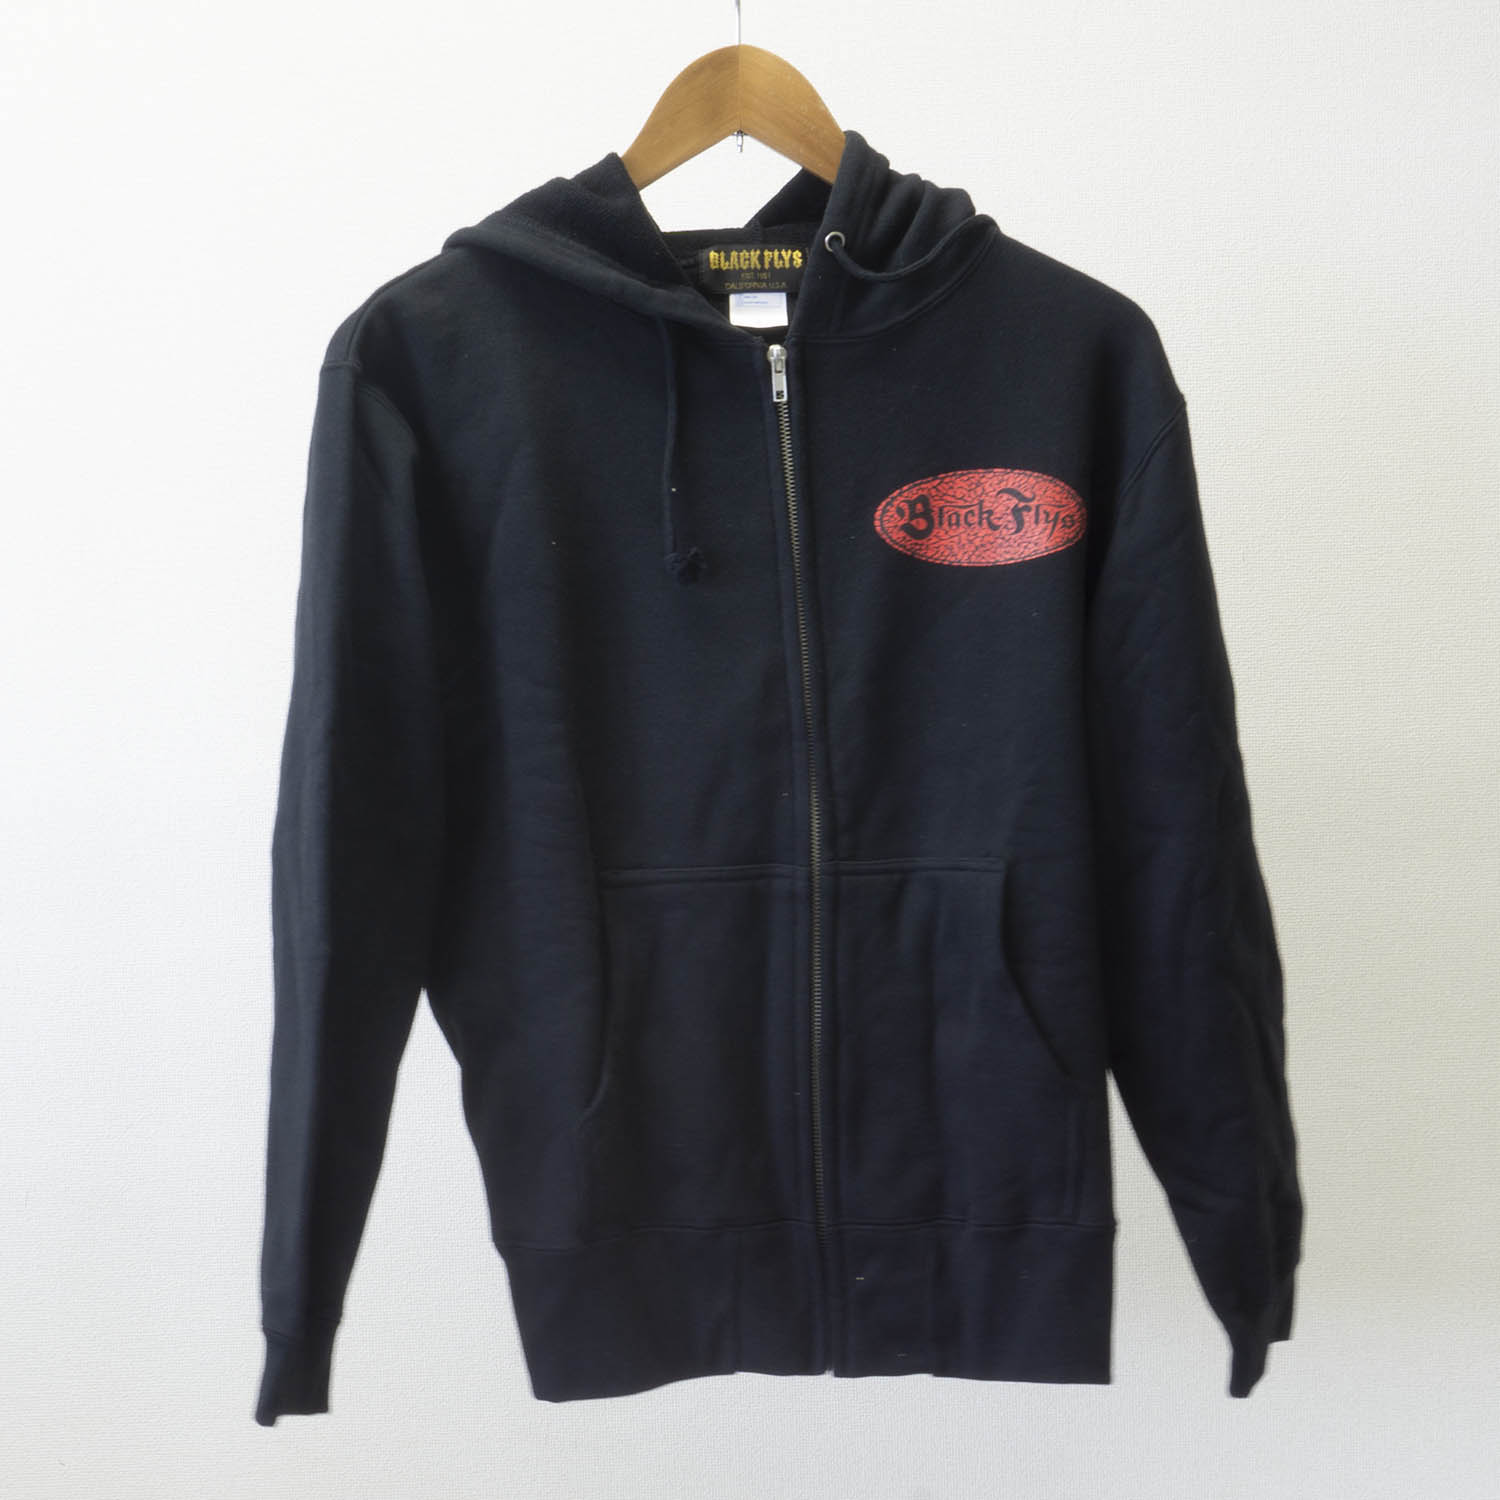 94LOGO CEMENT ZIP UP